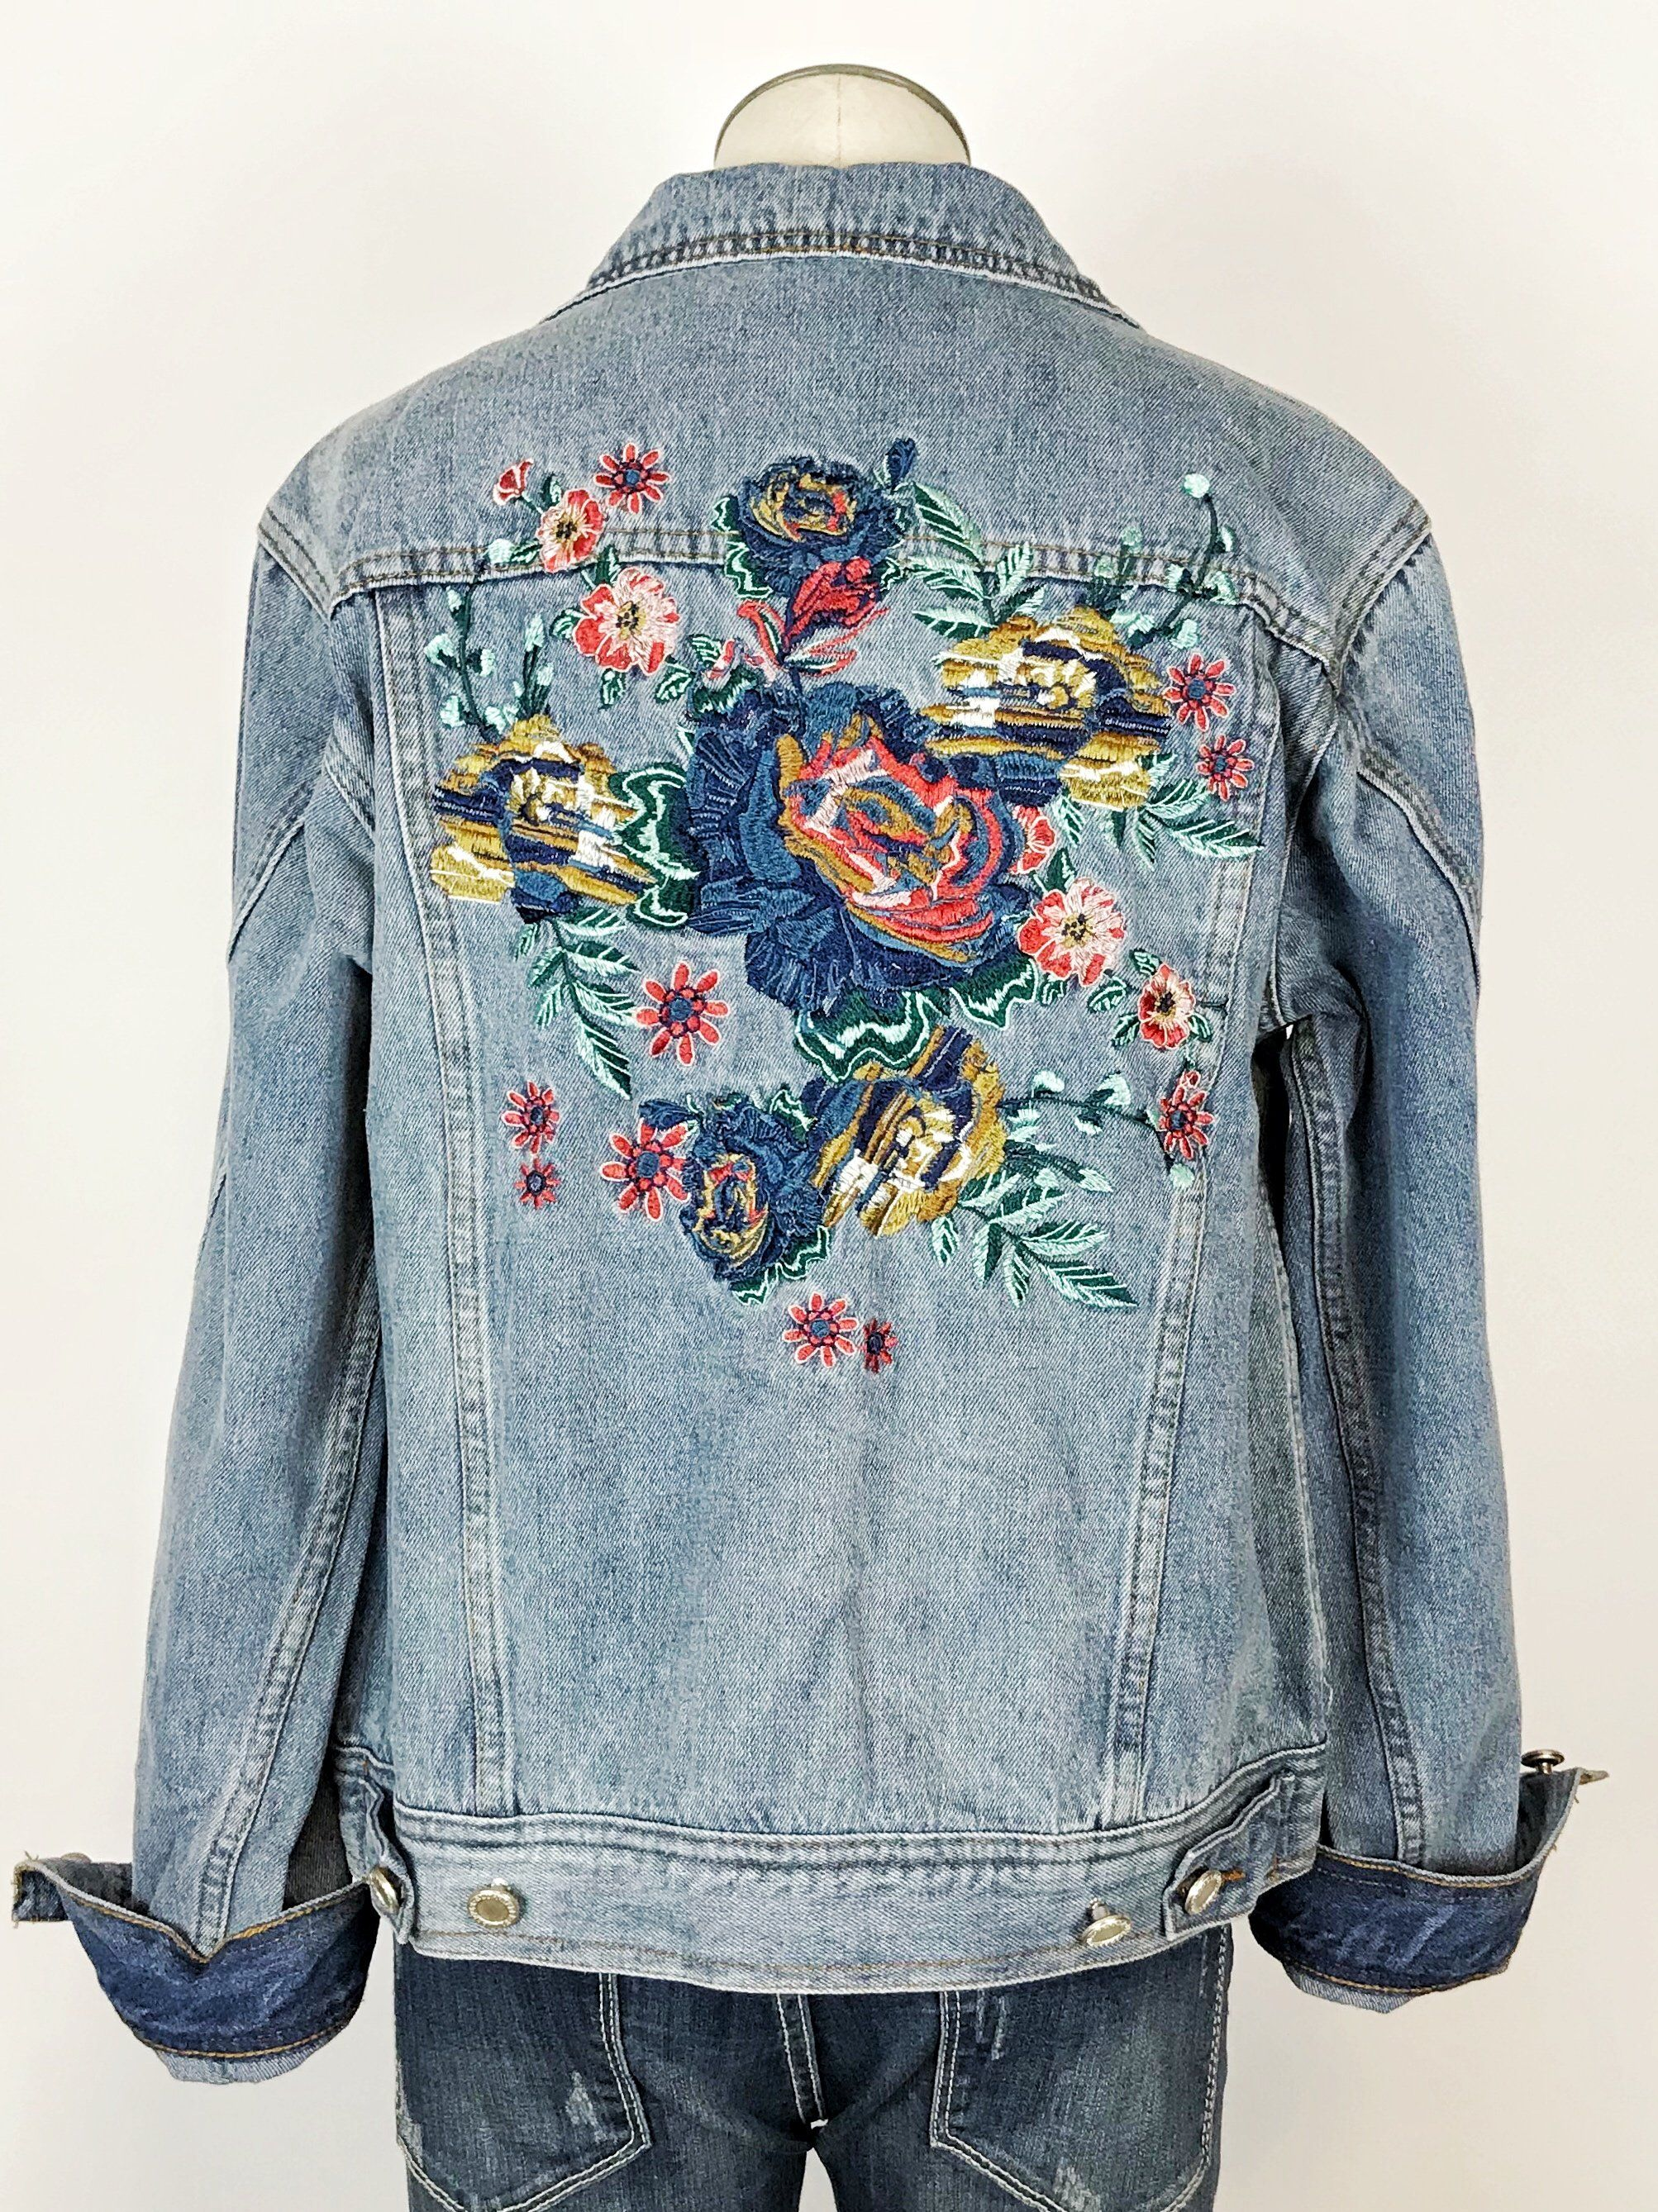 This Floral Embroidered Denim Jacket Is The Perfect Addition To Throw On Over Your Favorite Tees T Embroidered Denim Jacket Embroidered Denim Diy Denim Jacket [ 2677 x 2006 Pixel ]